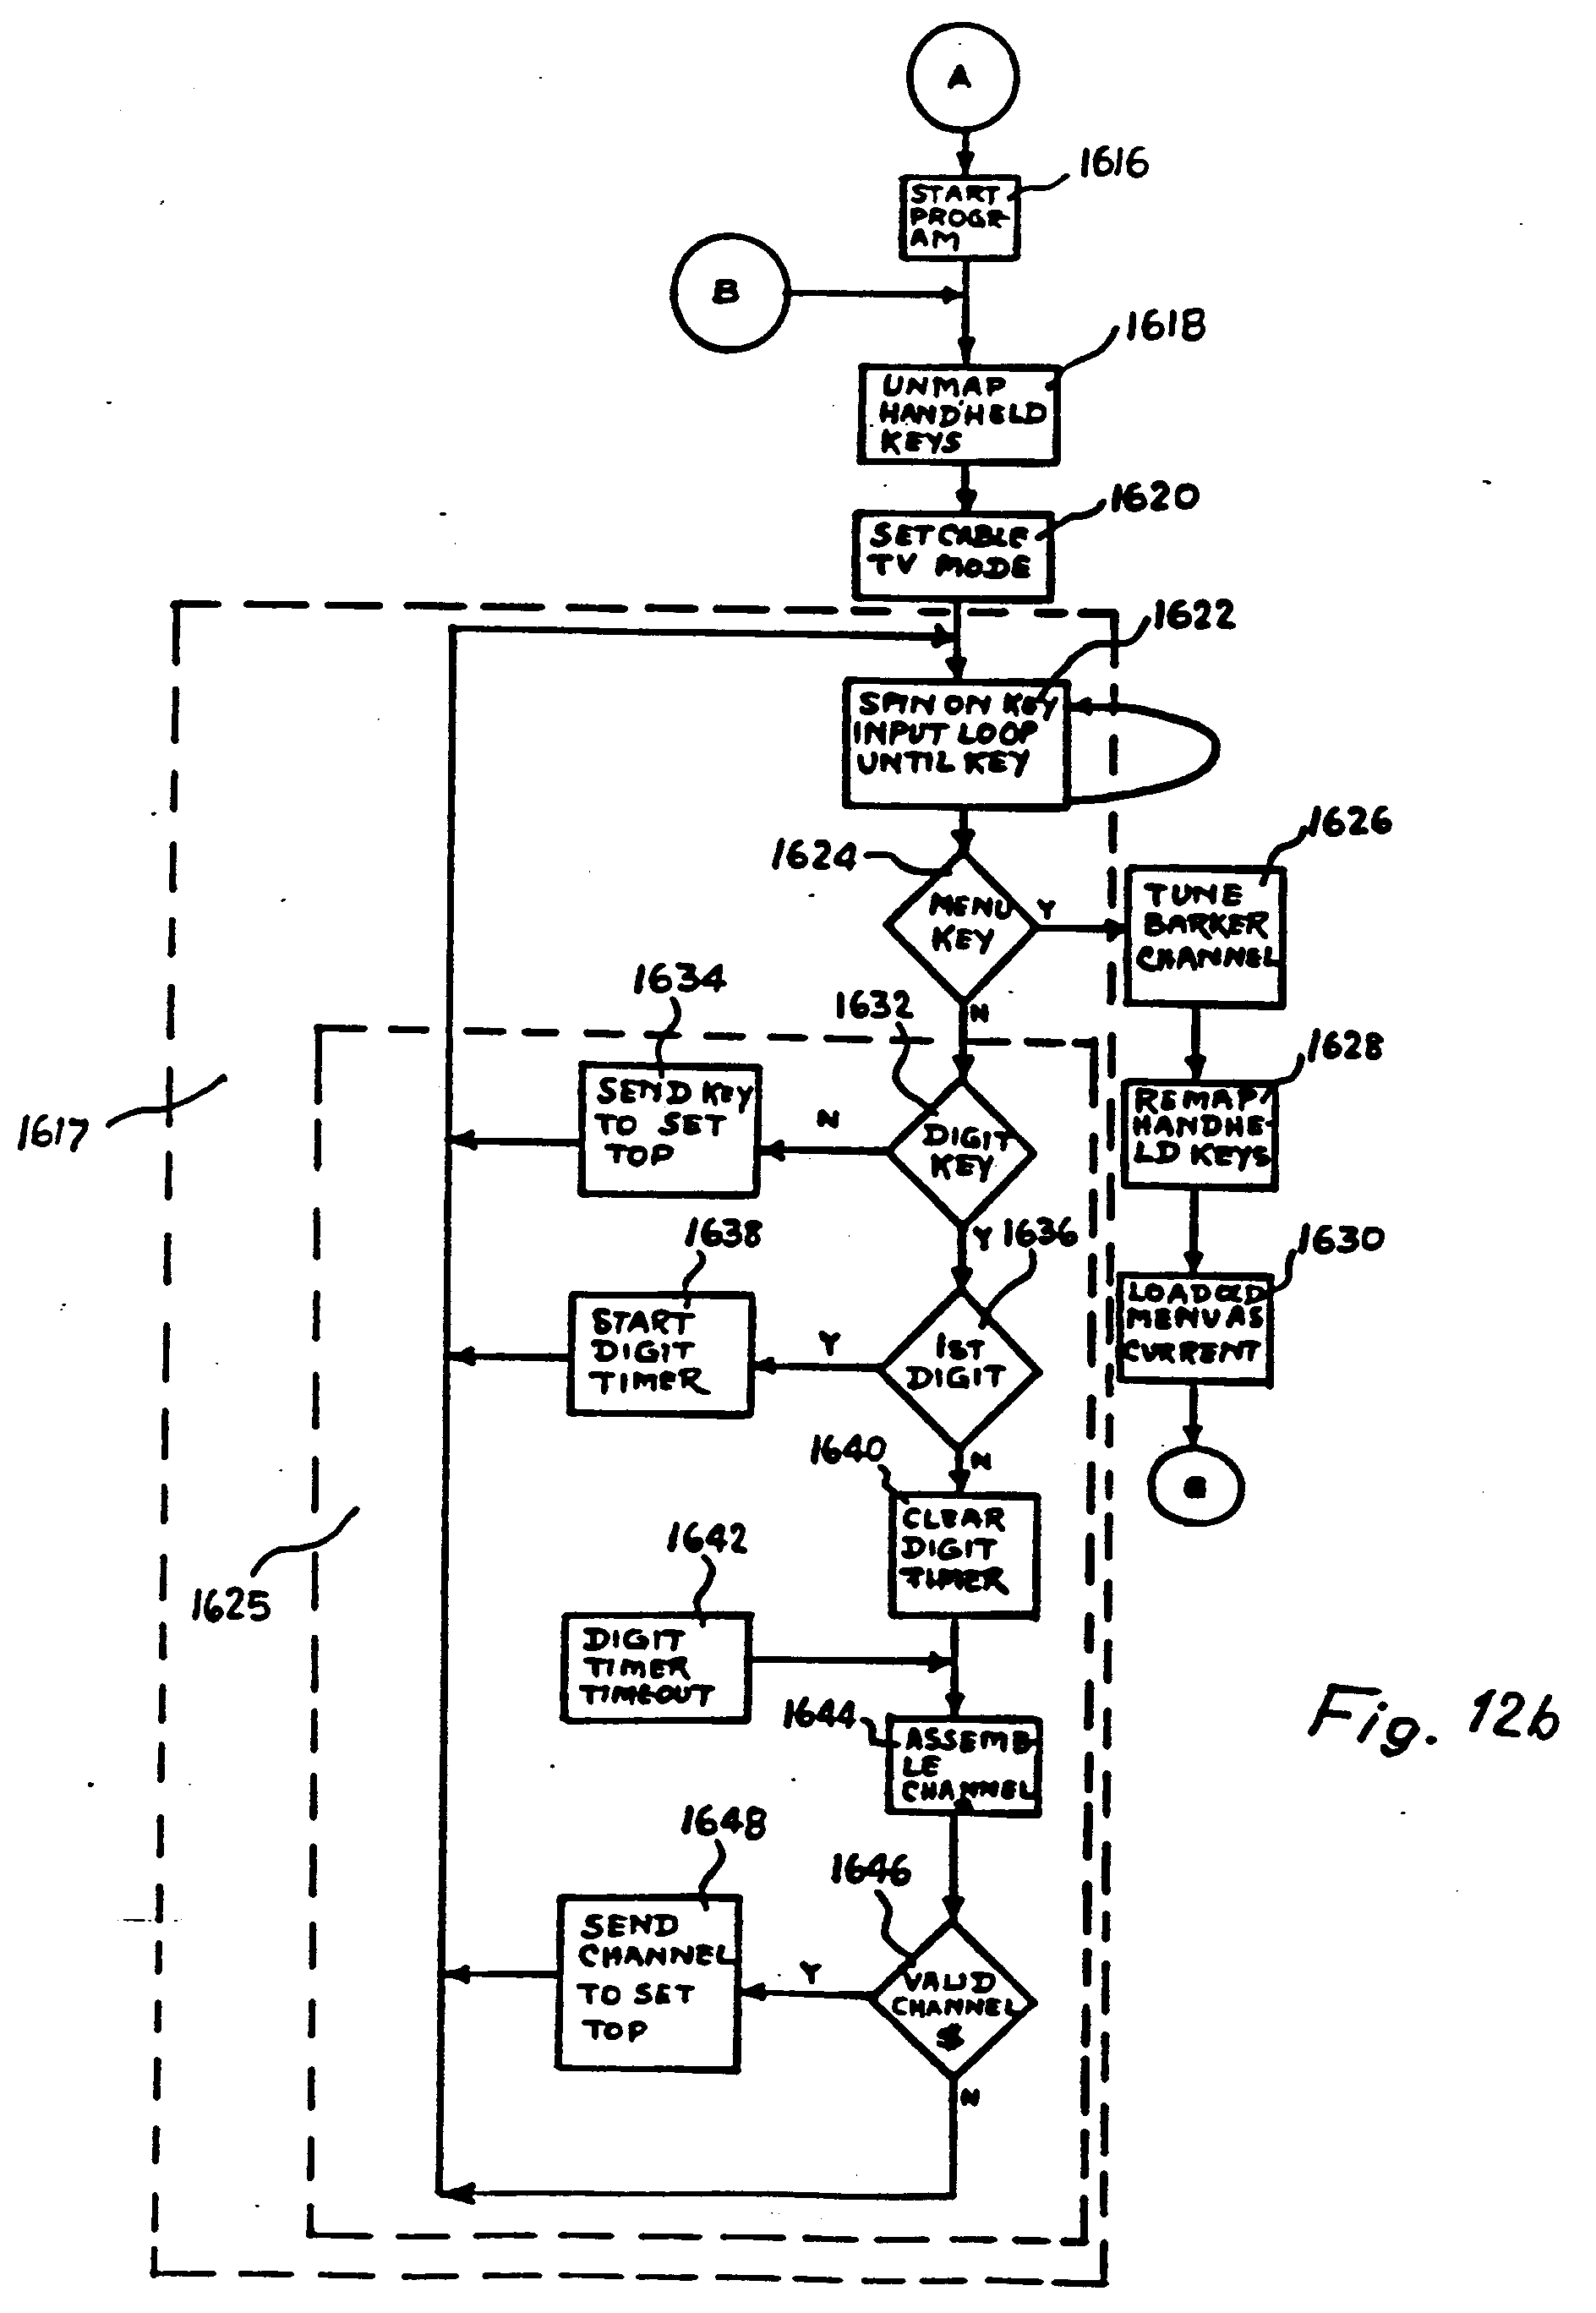 Ep0856993a2 Set Top Terminal For Cable Television Delivery Systems Dtmf Based Fm Remote Control Circuit Diagram Centre Google Patents